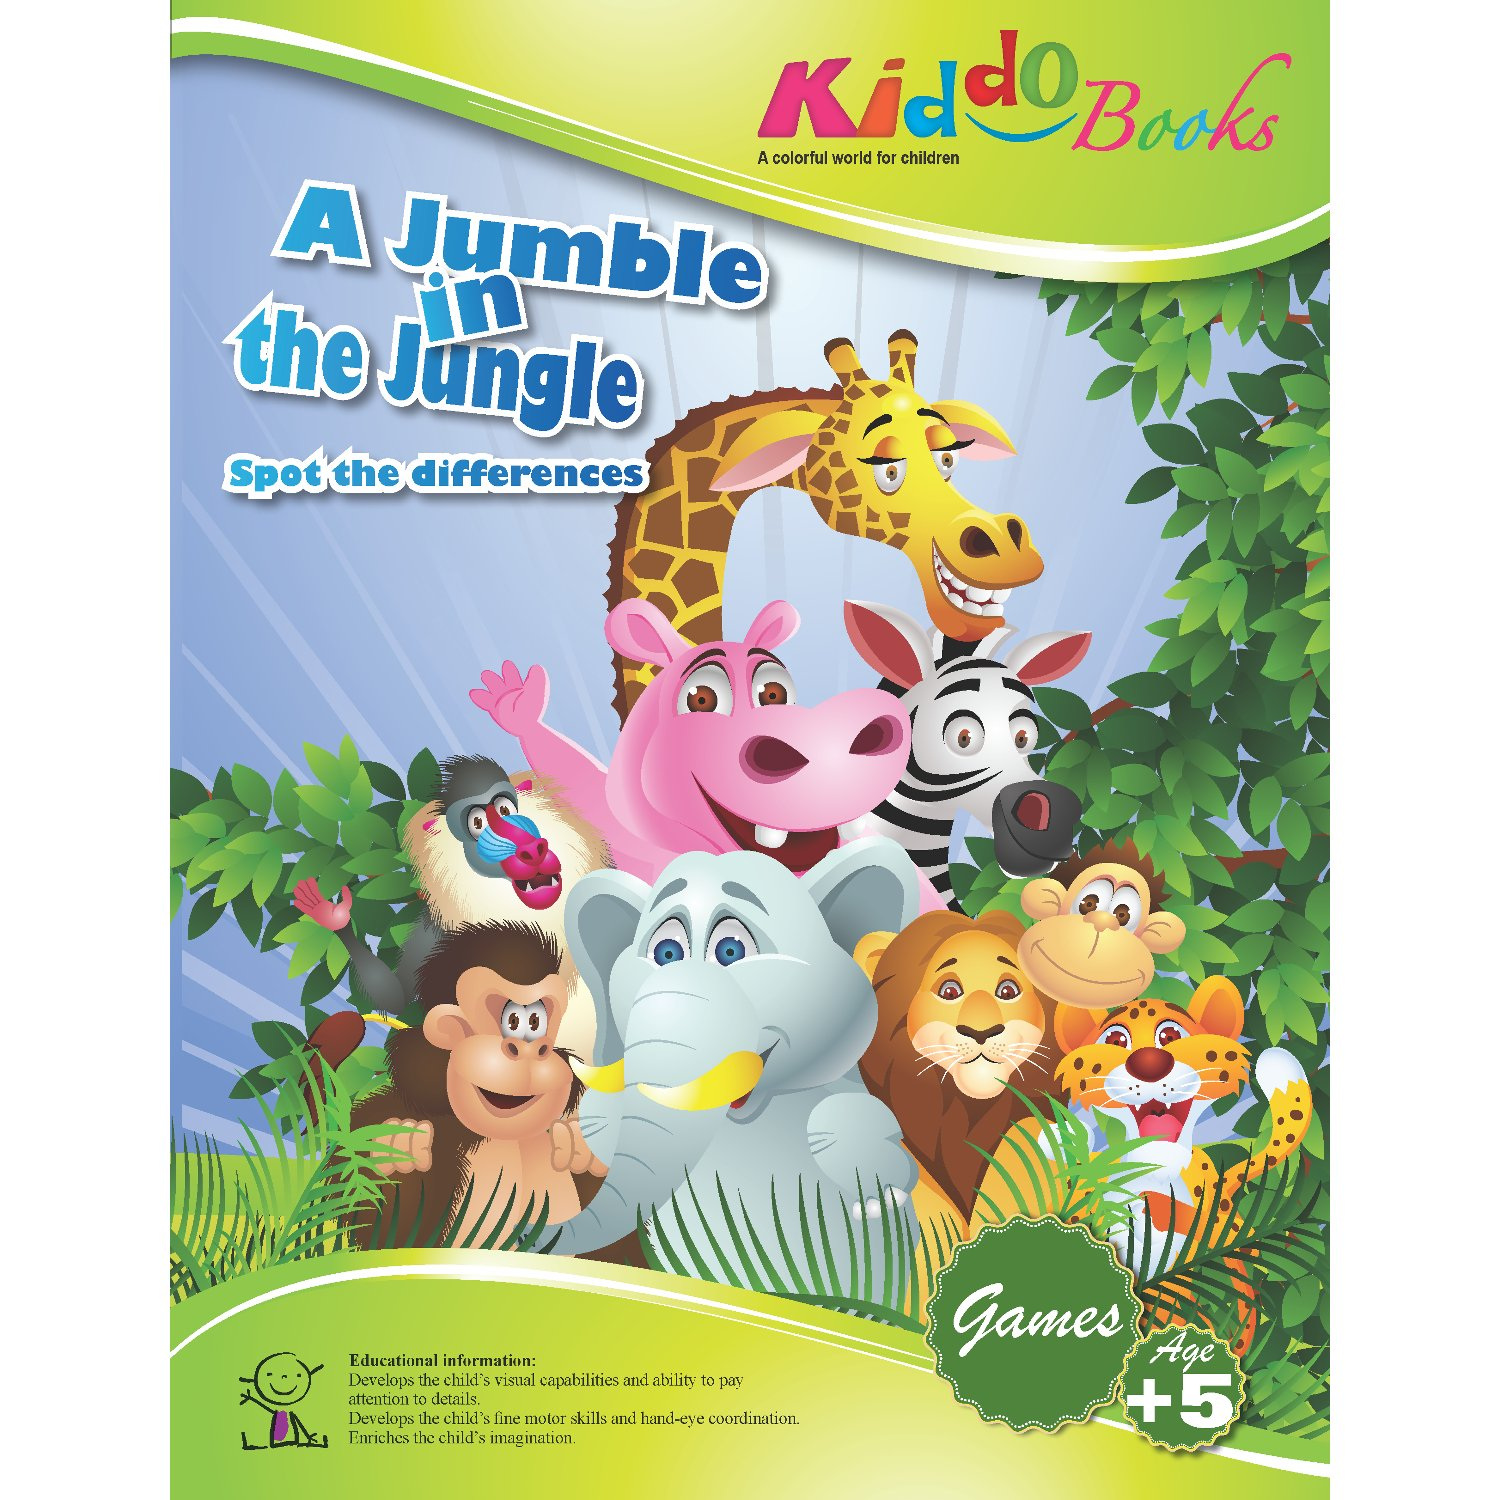 American Educational Products A-1007 A Jumble in the Jungle Booklet for kiddo